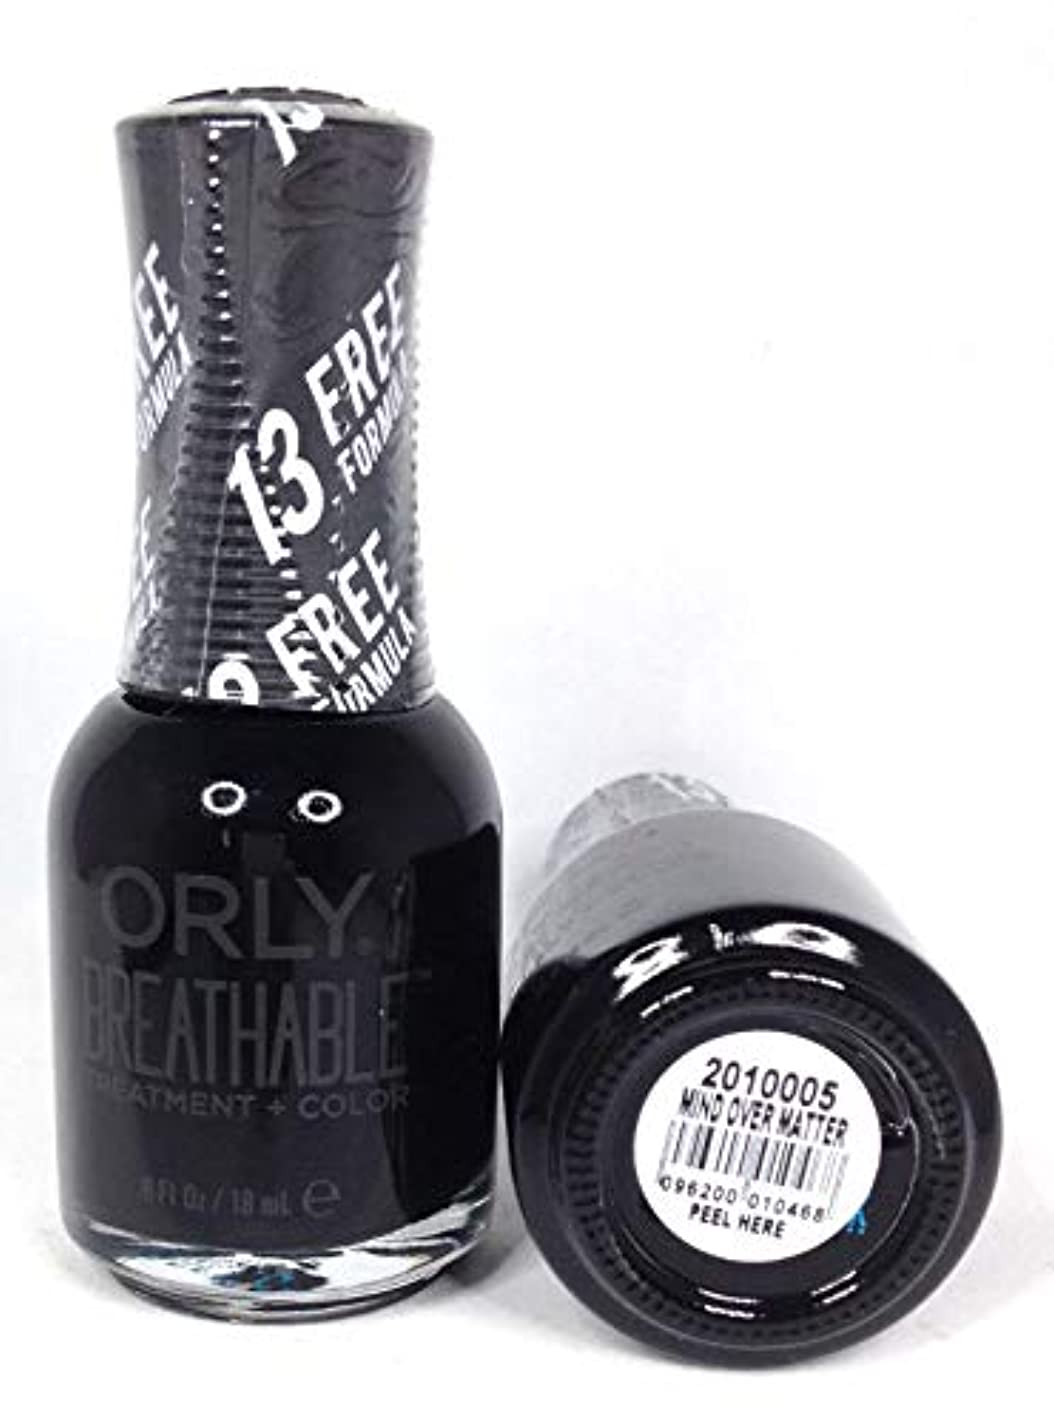 煙子供時代プットORLY Breathable Lacquer - Treatment+Color - Mind Over Matter - 18 mL / 0.6 oz